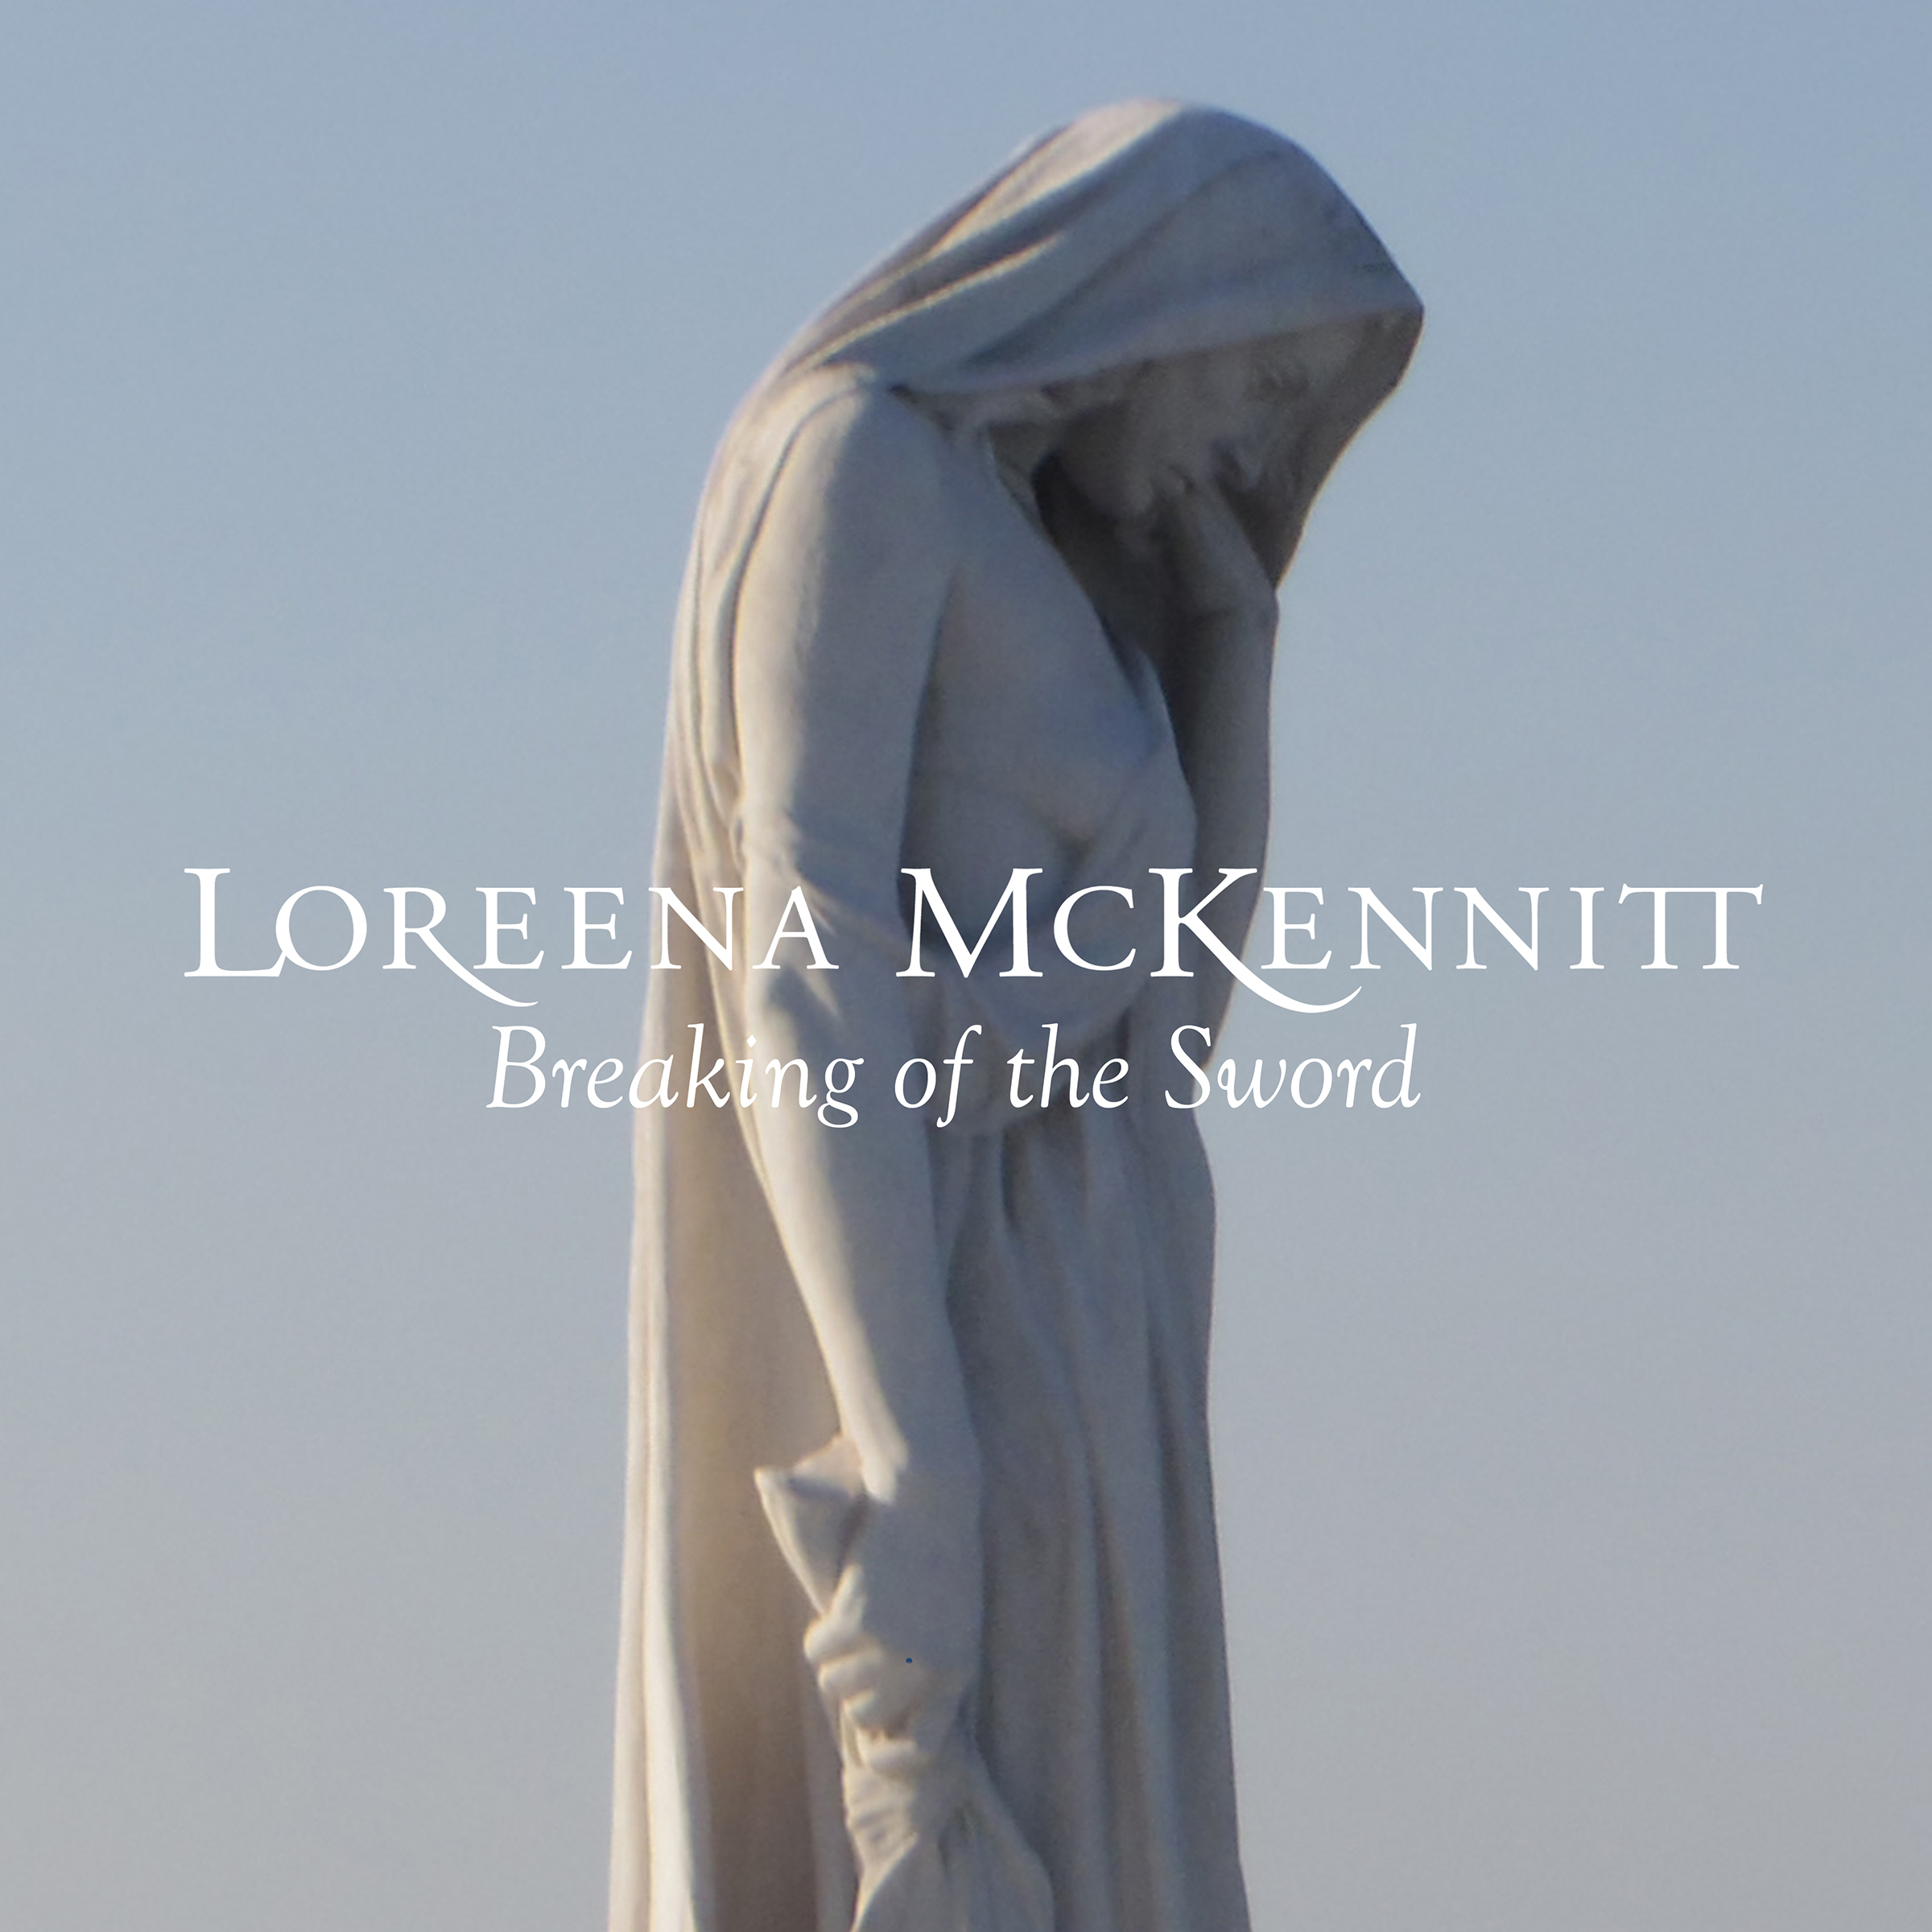 "An image of a marble statue of a woman, looking down, wearing a draped garment that also covers her hair. Written across the image are the words ""LOREENA MCKENNITT Breaking of the Sword"""